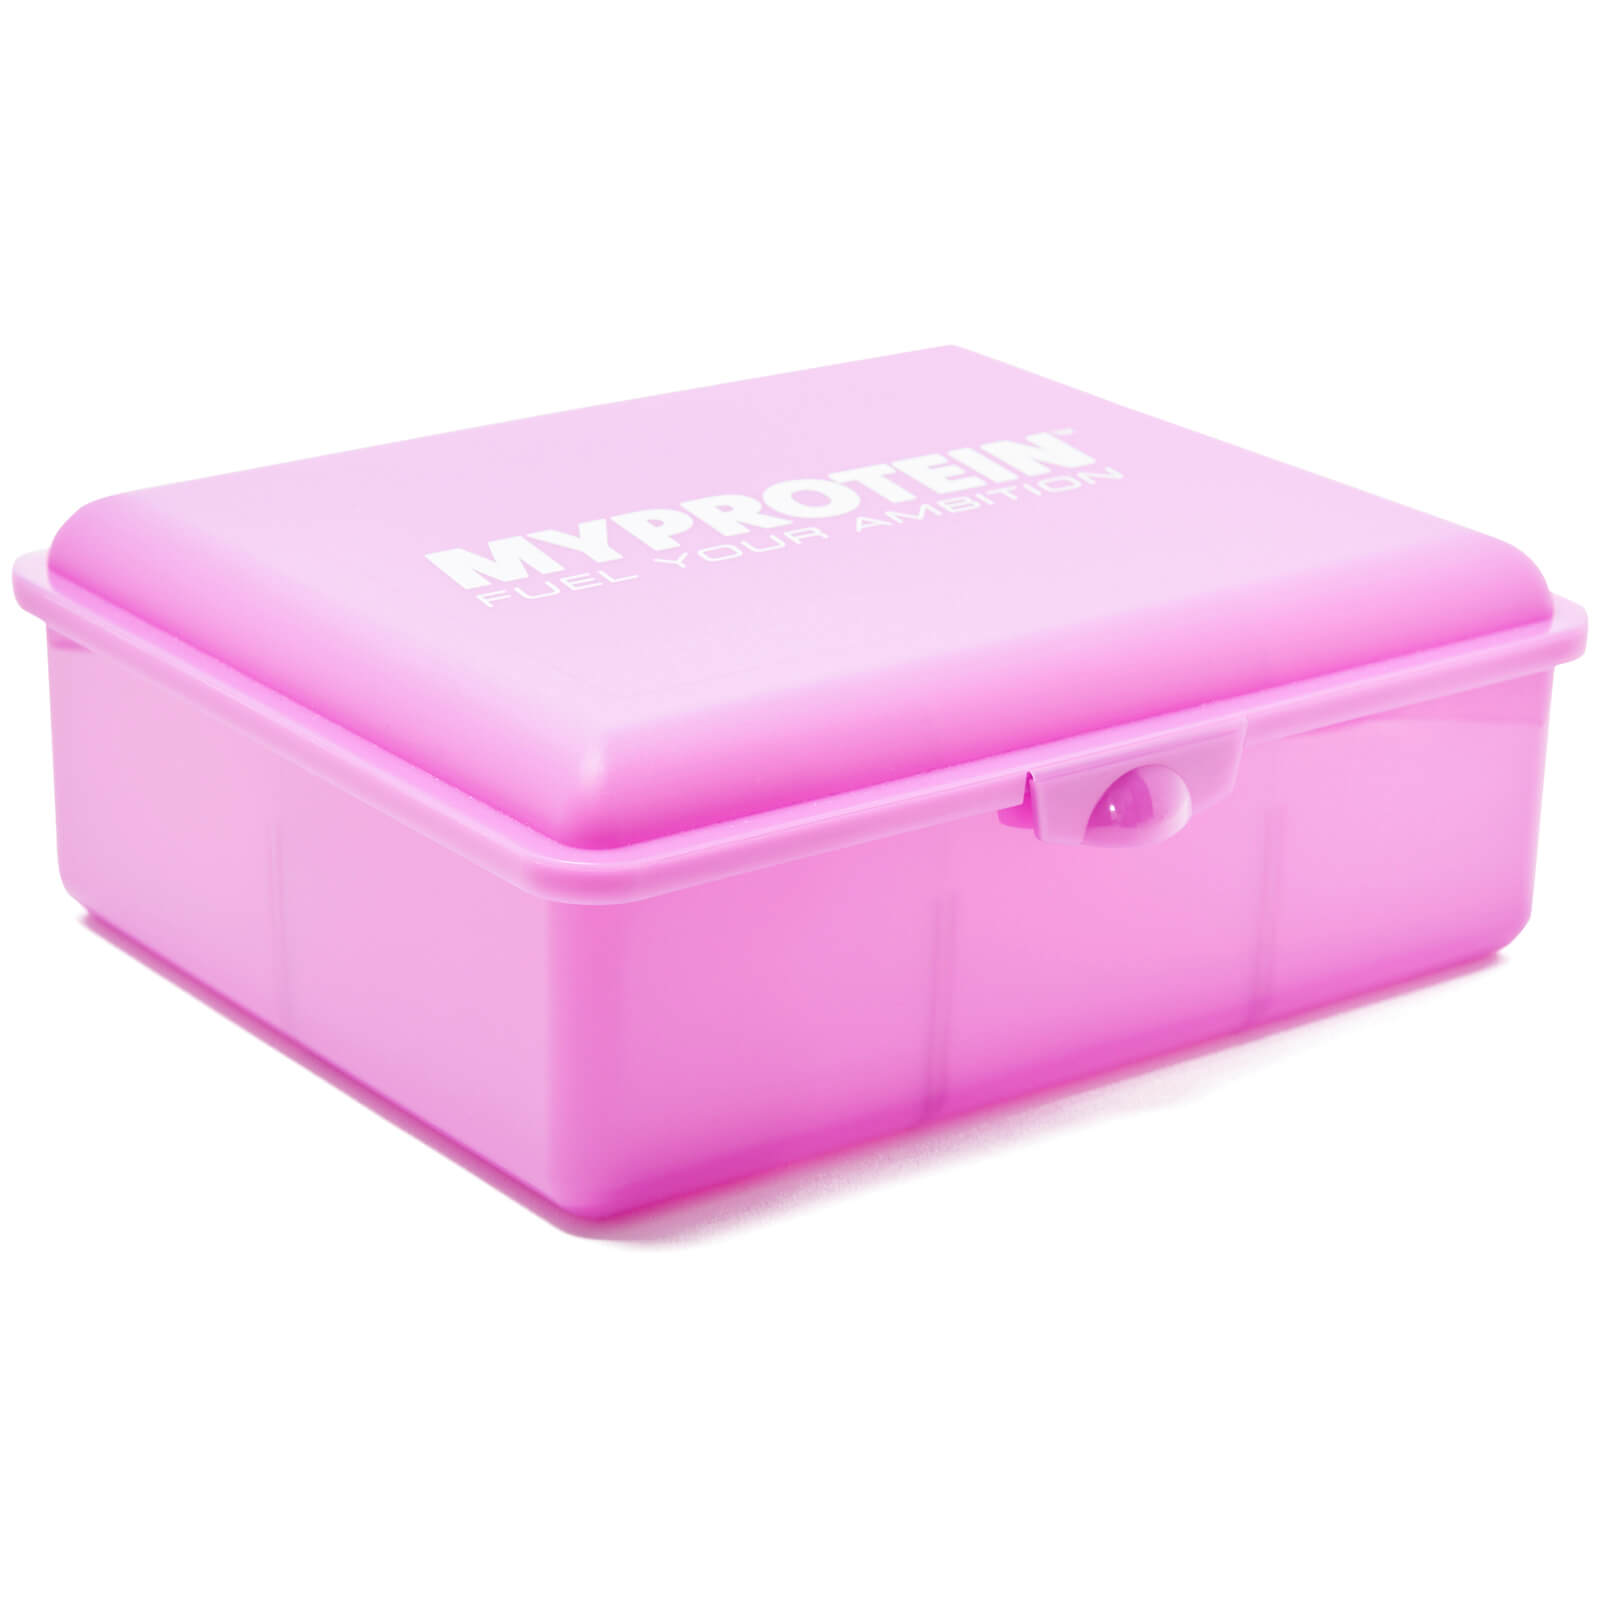 Myprotein Food KlickBox, Stor - Rosa